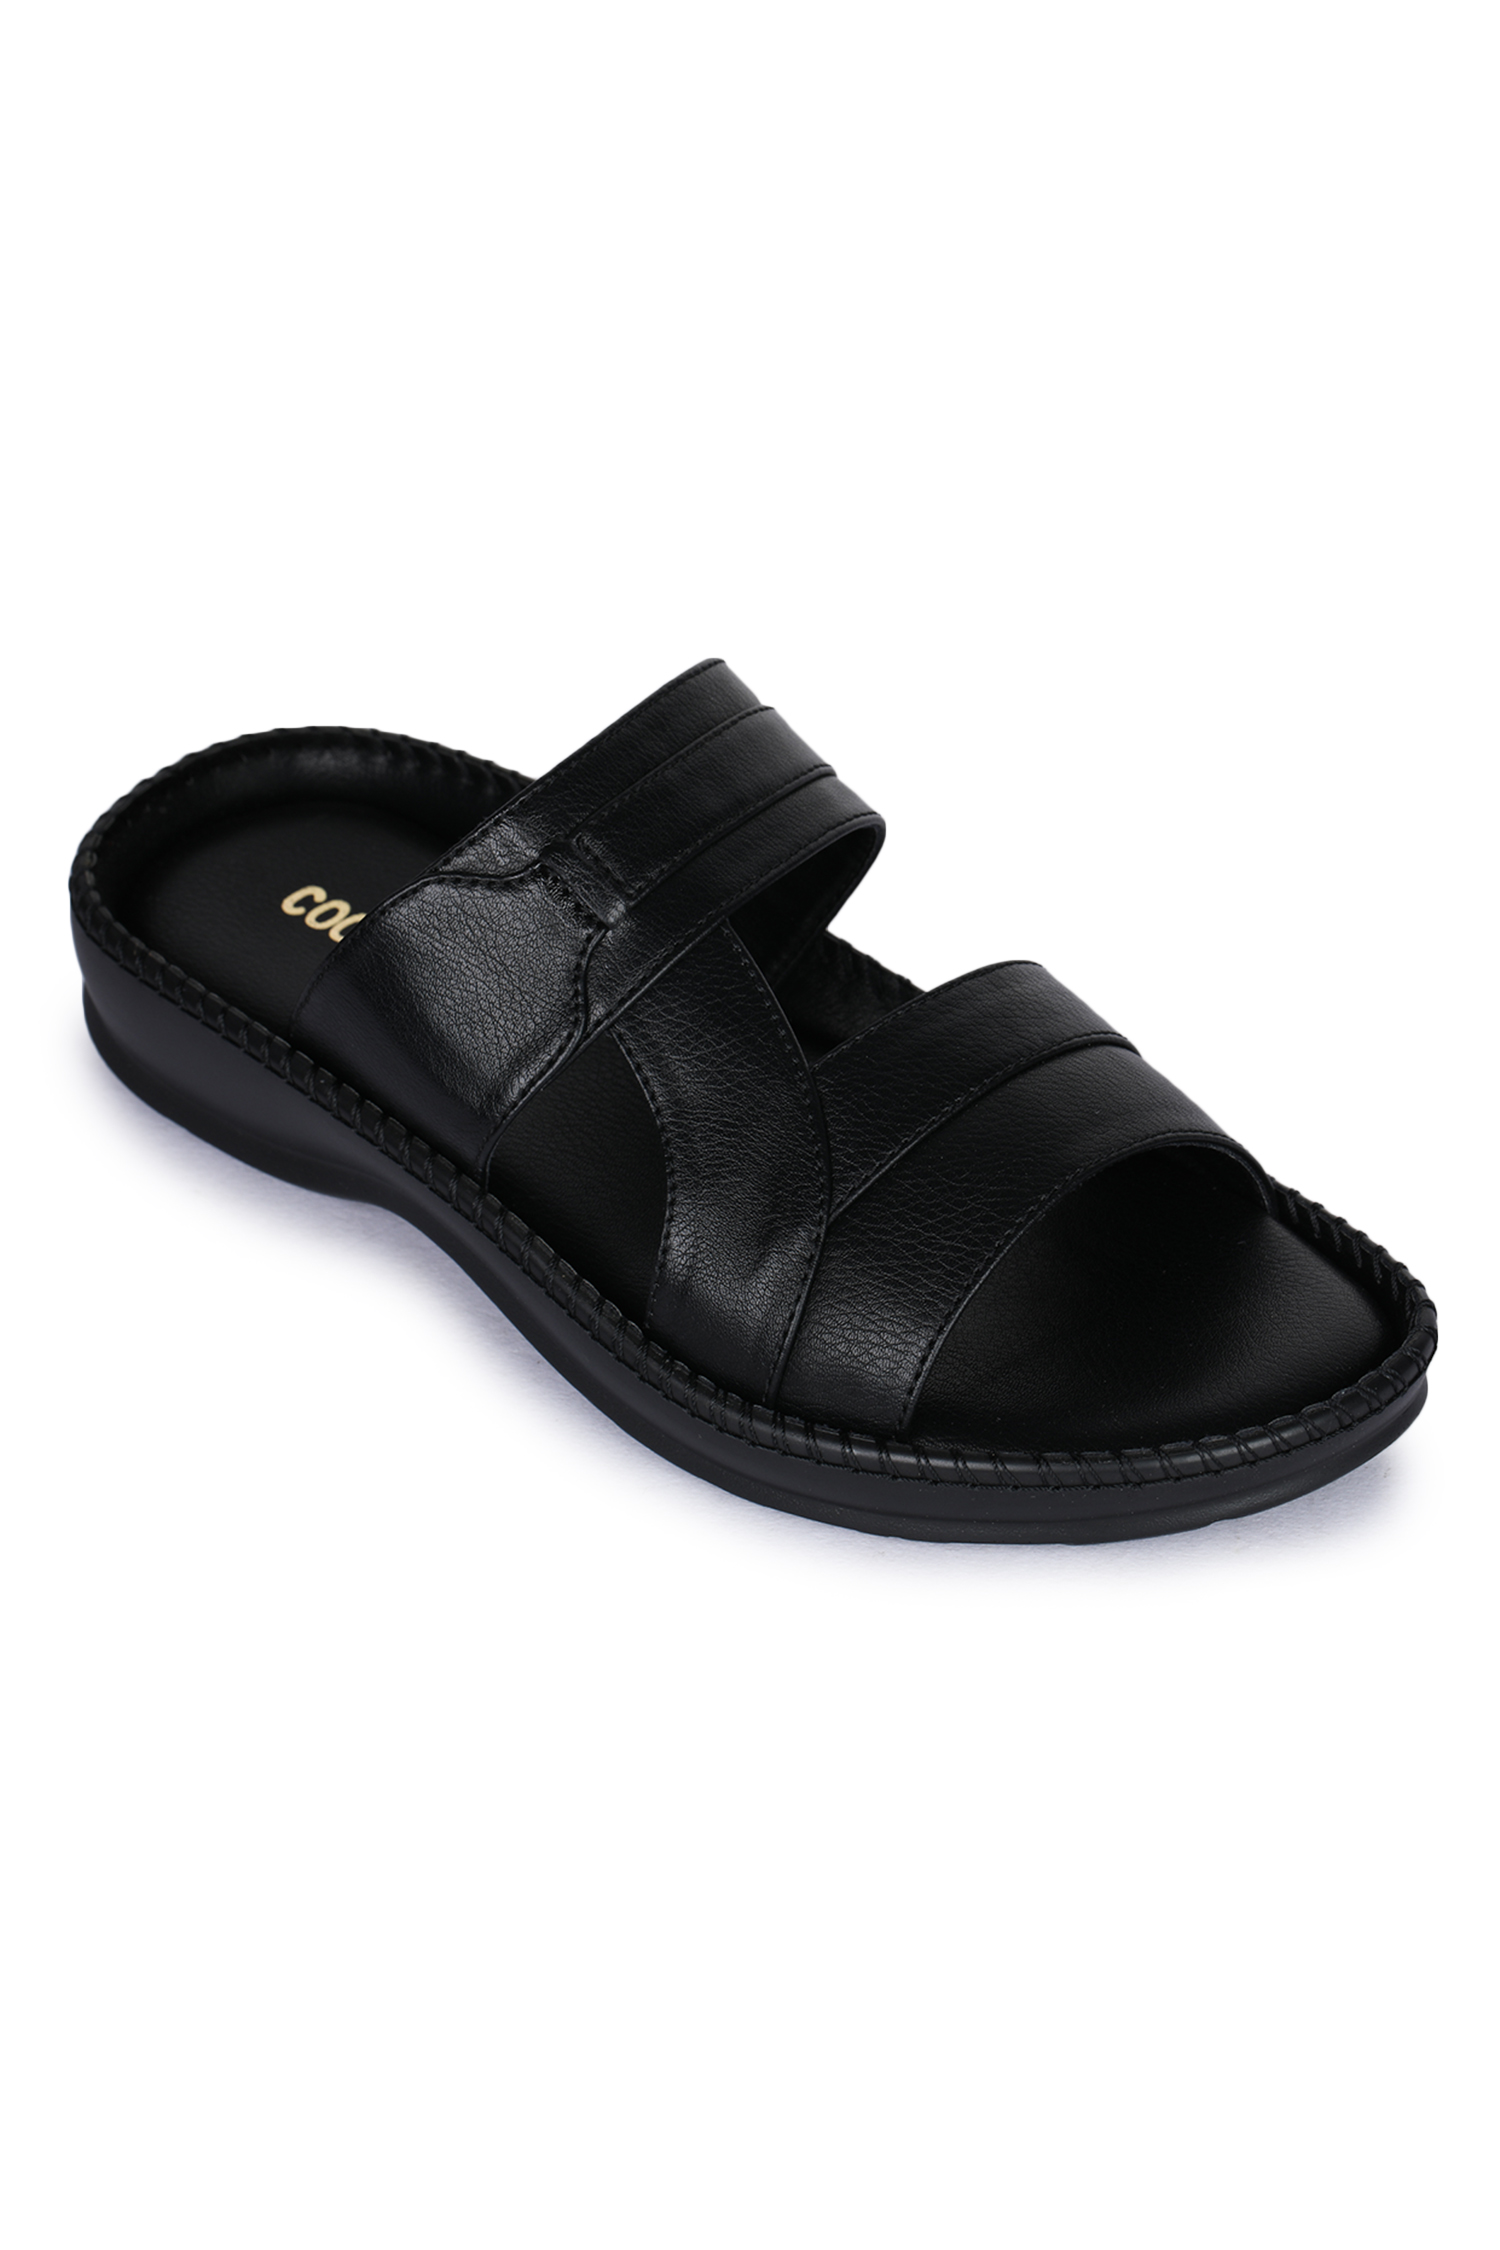 Liberty | Liberty COOLERS Slippers K2-01_BLACK For - Men